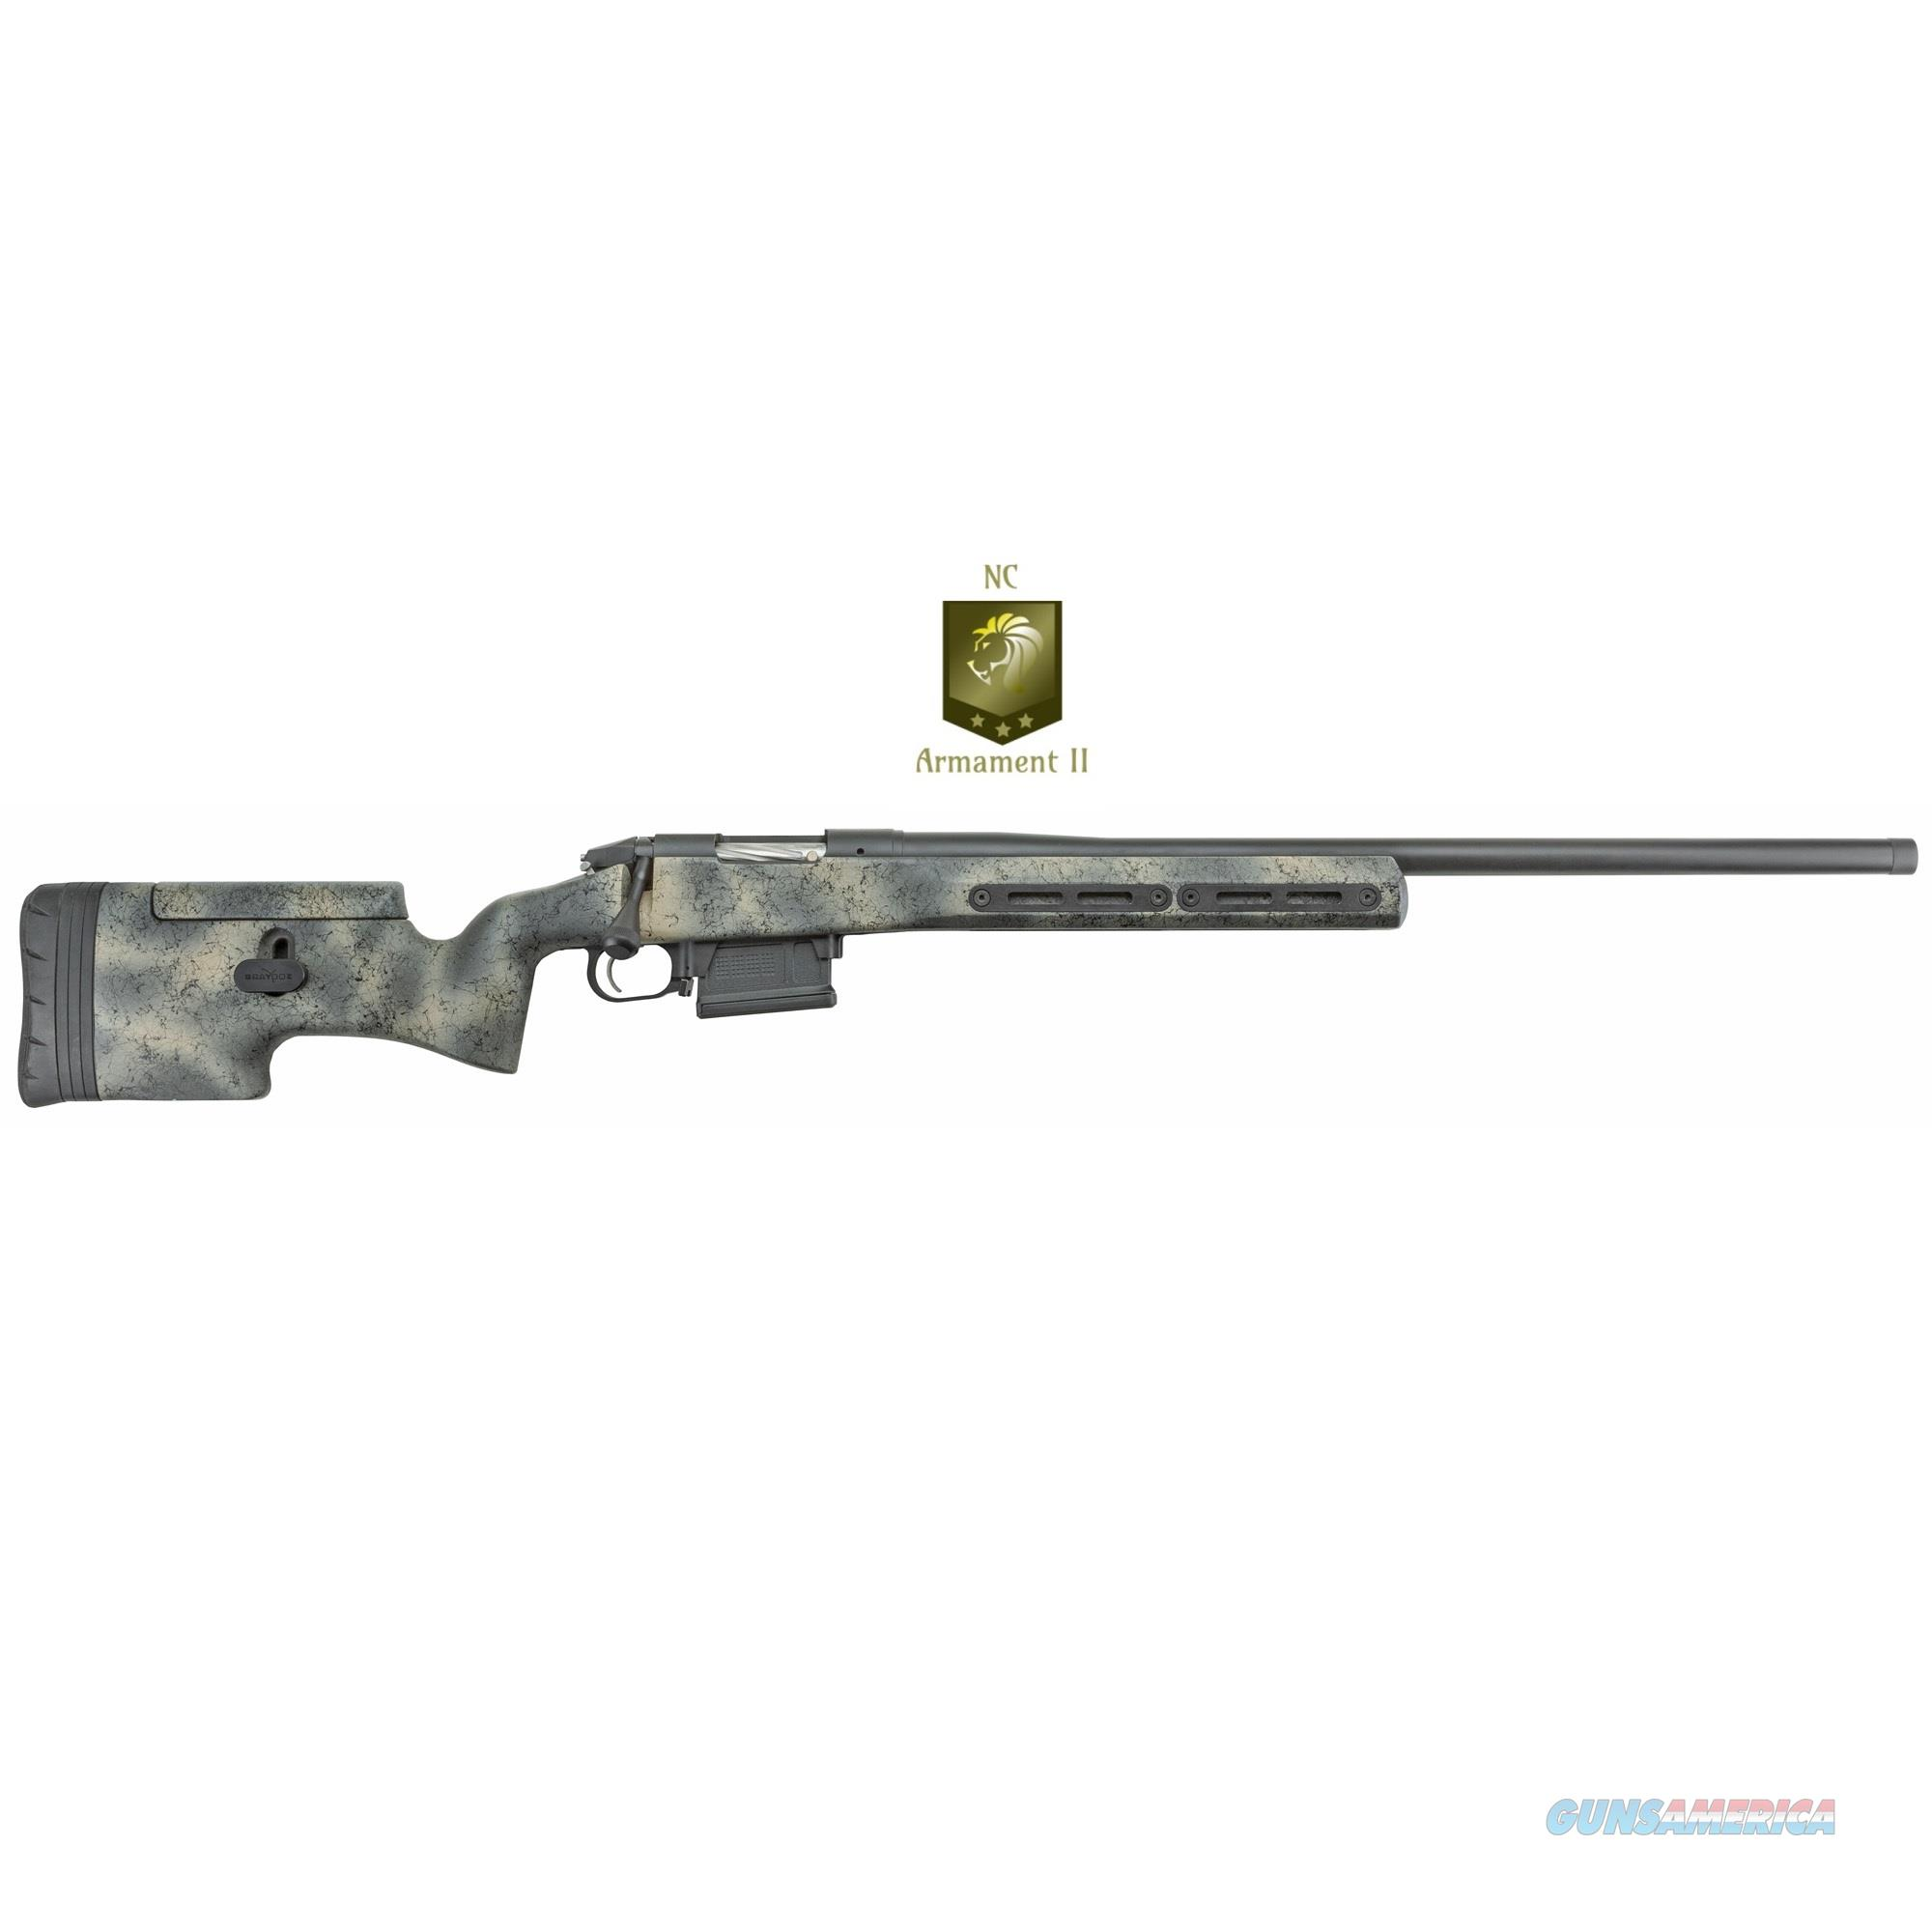 Bergara Ridgeback Bolt Action 300 Winchester Magnum 26 Inch Threaded Barrel  Guns > Rifles > Bergara Rifles